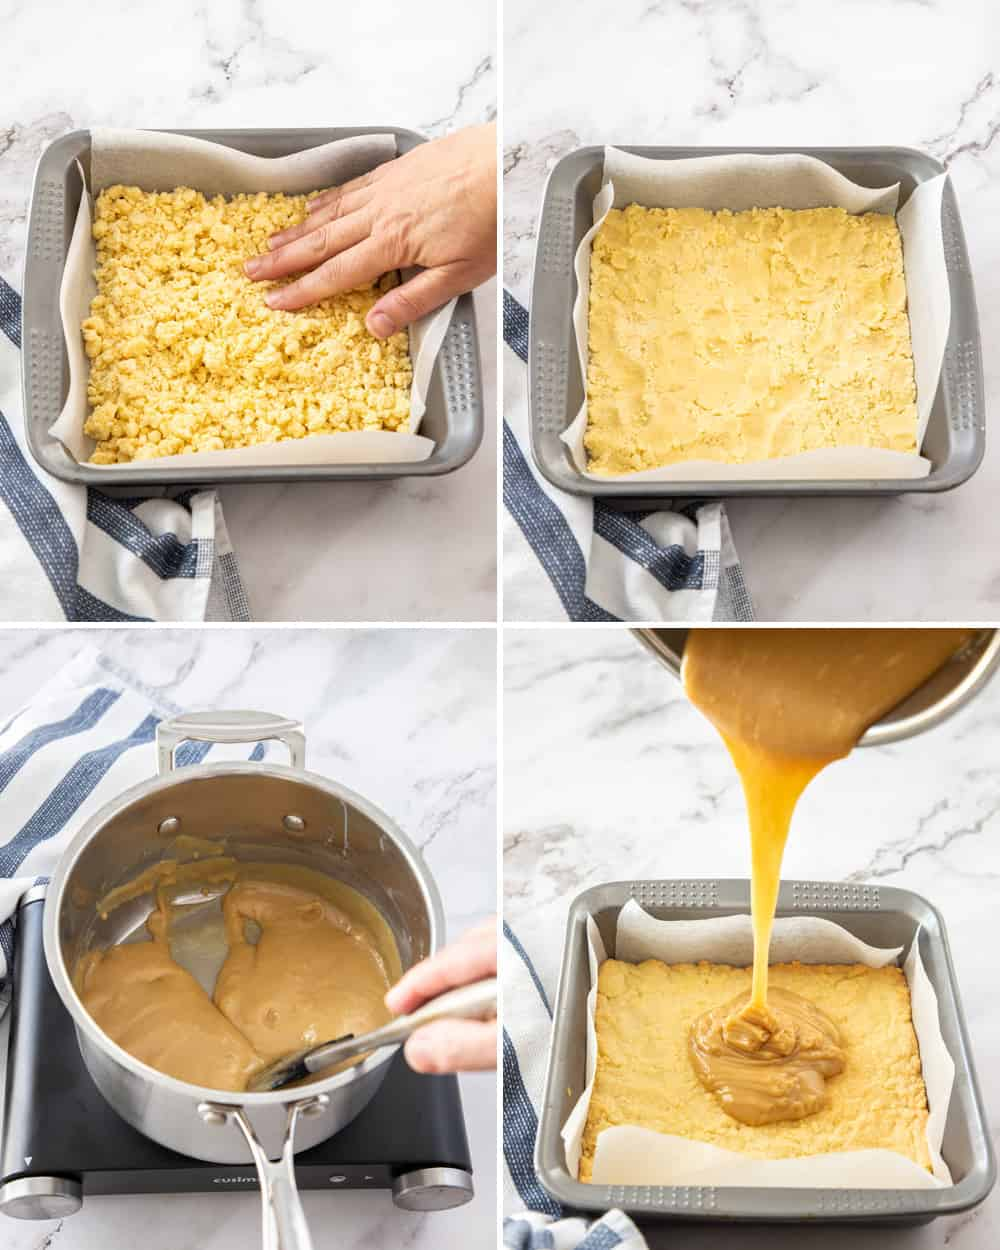 Collage of 4 images showing the base and caramel being added to baking tin